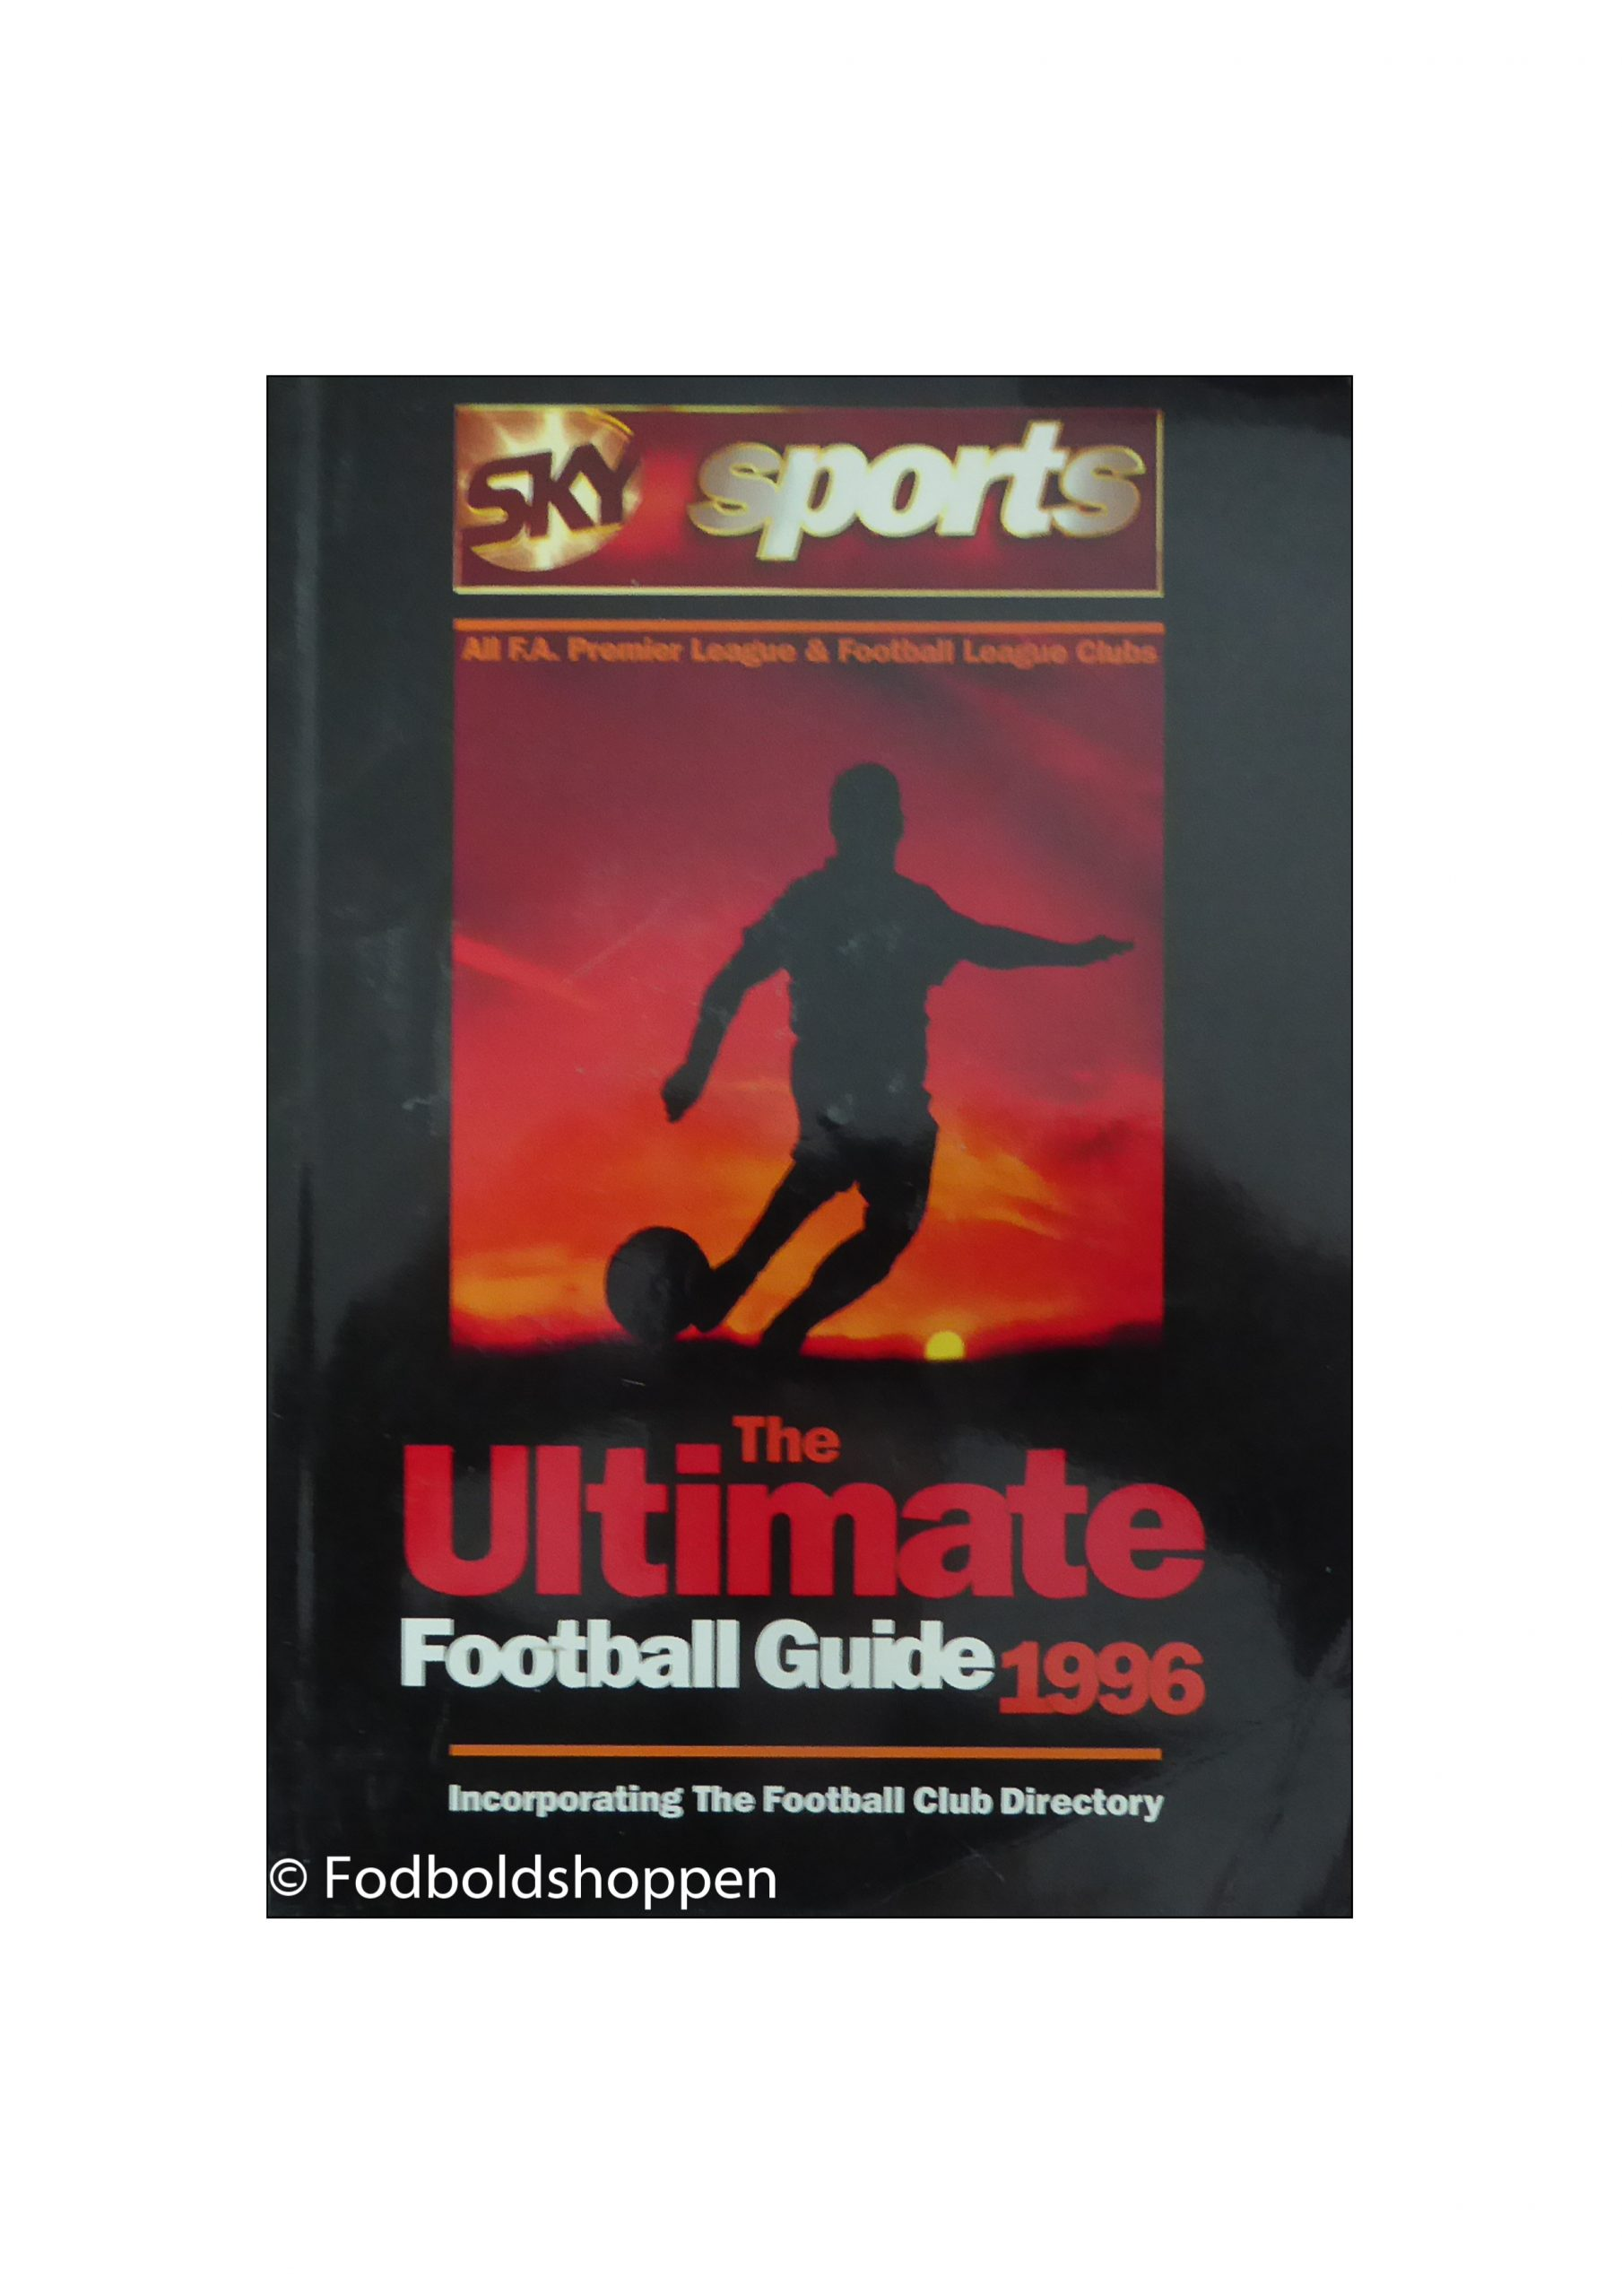 The Ultimate Football Guide